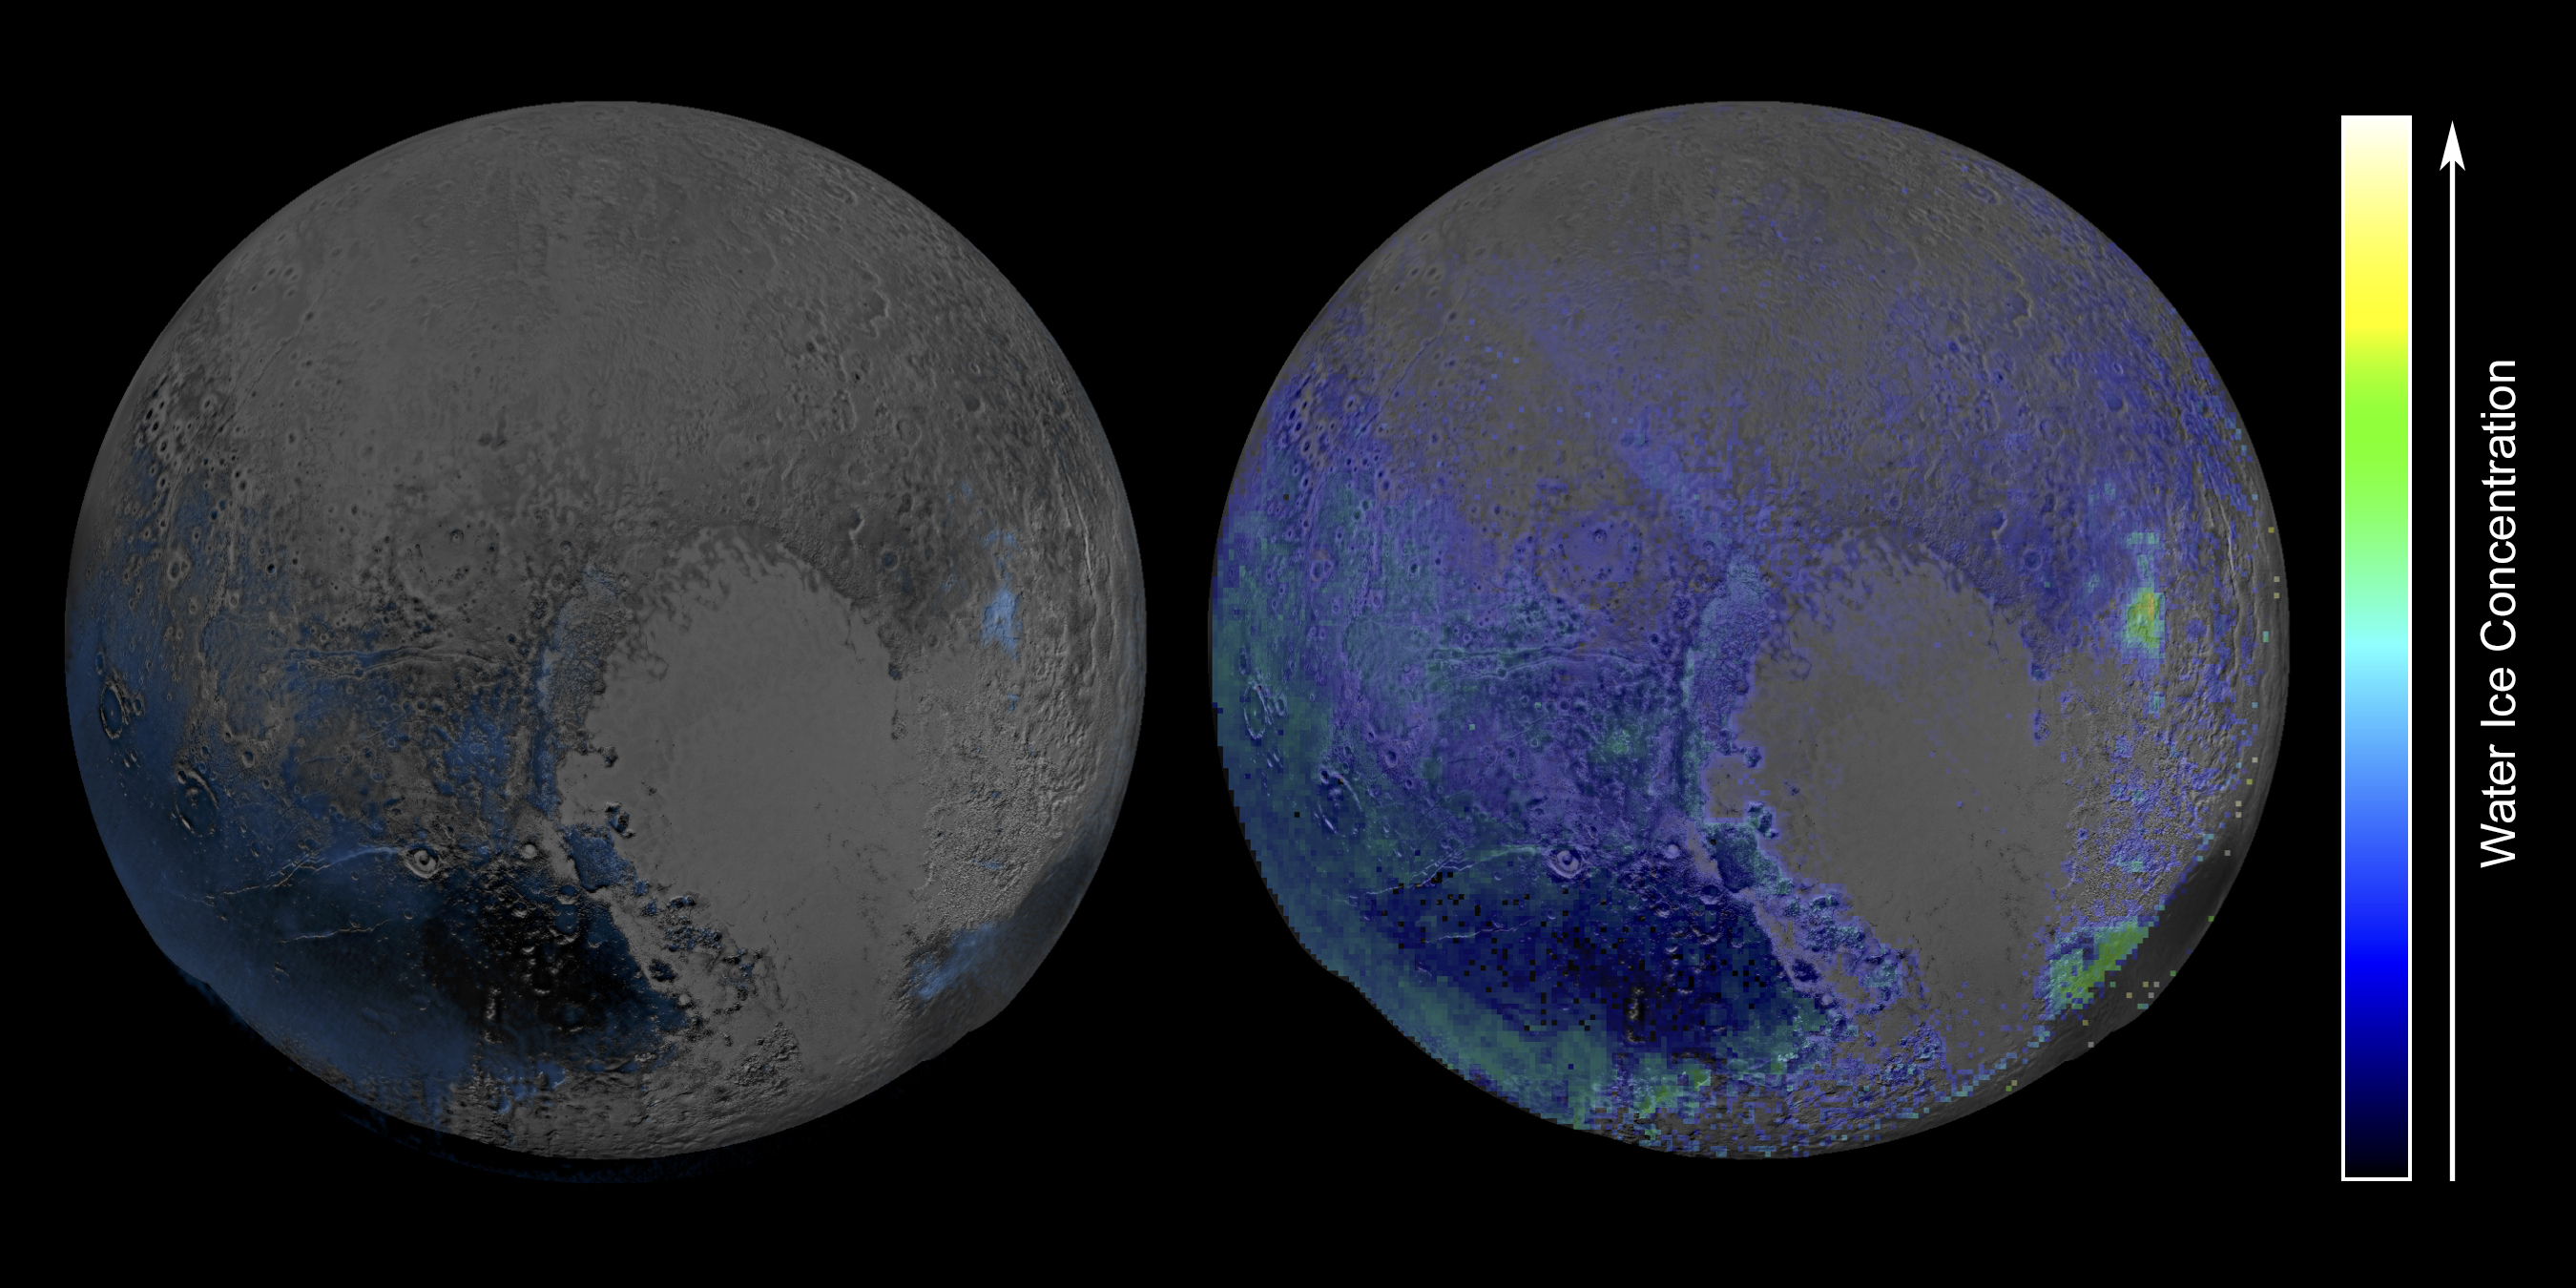 Pluto's Surface Has a Surprising Amount of Water Ice (Photo)